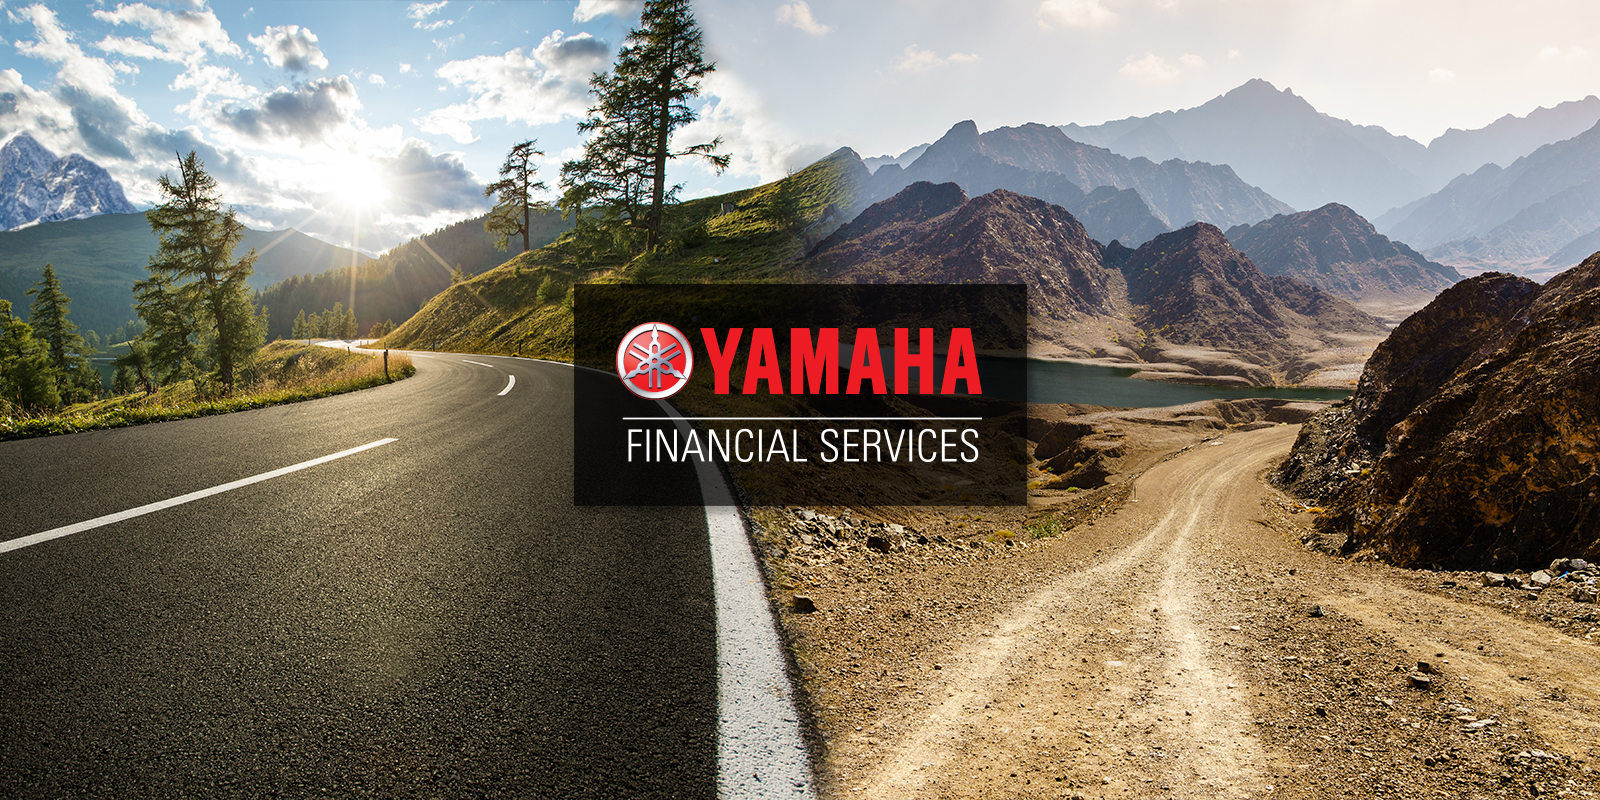 Yamaha Motor Finance Launches New Full Spectrum Installment Program